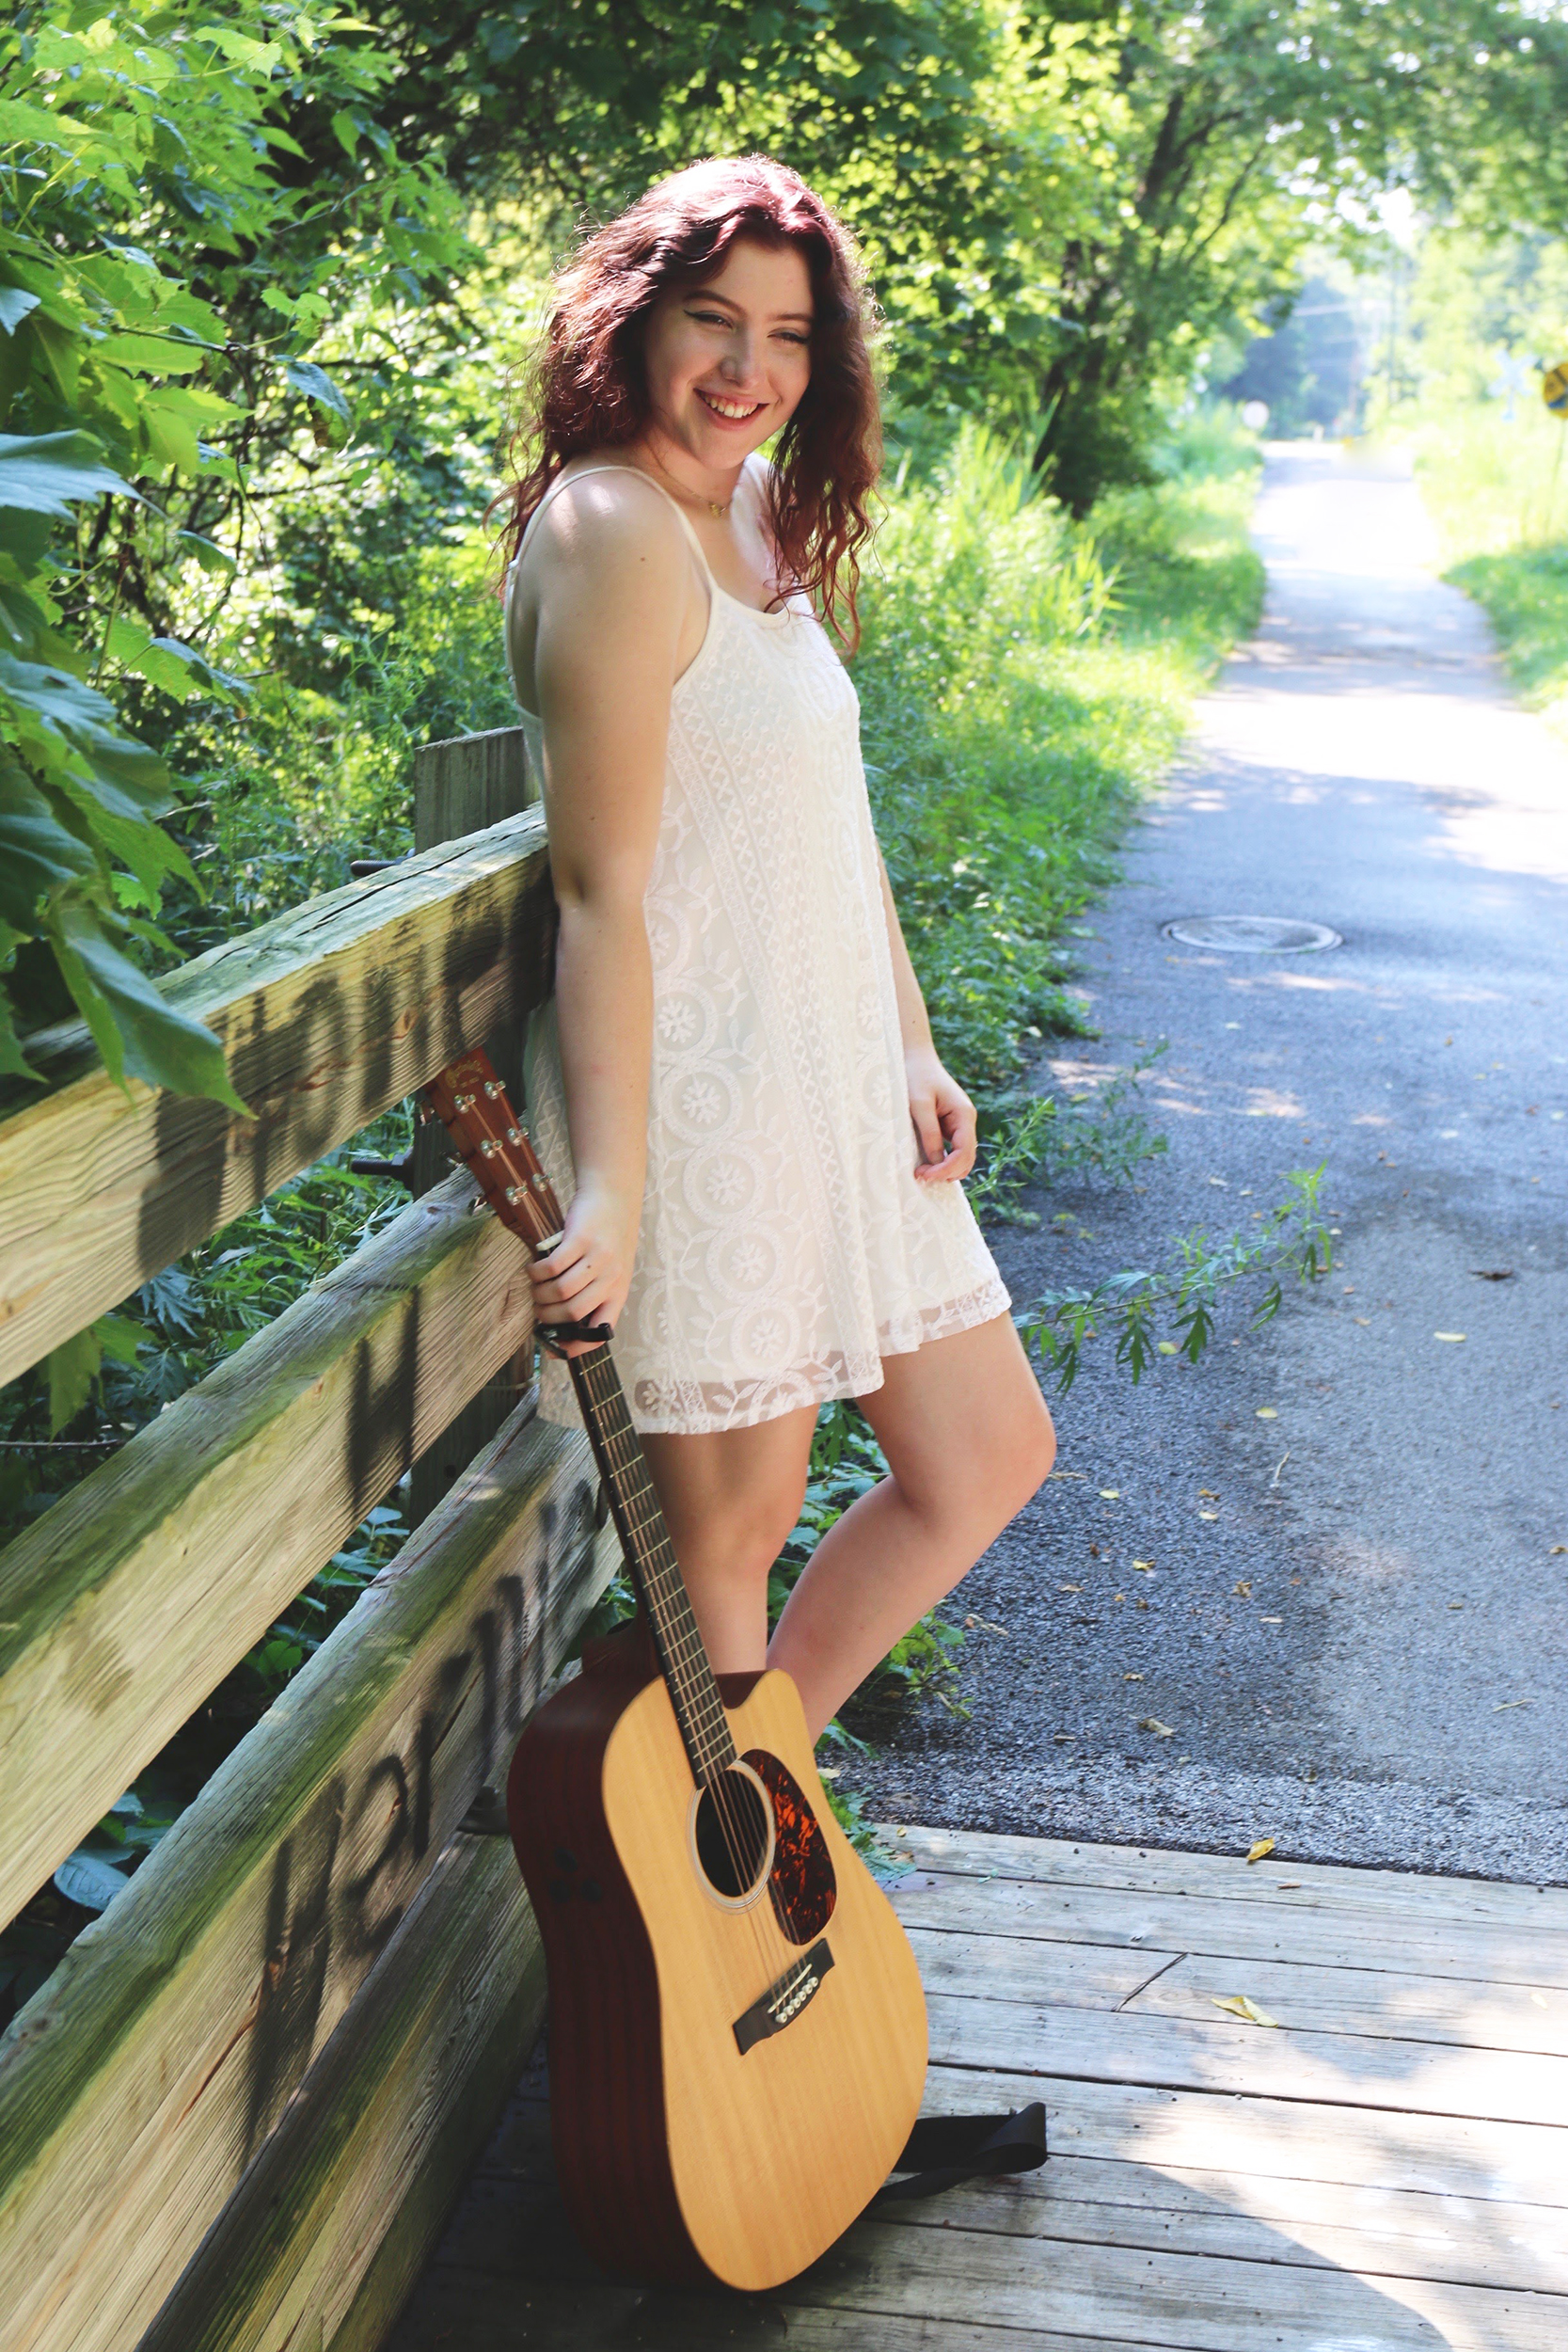 English creative writing major freshman Katherine Johnson (pictured above) writes music and poetry in her spare time. Johnson plays guitar and sings her own songs along with covers at open mic nights. She hopes to produce an EP in the summer of 2019 (courtesy of Katherine Johnson).